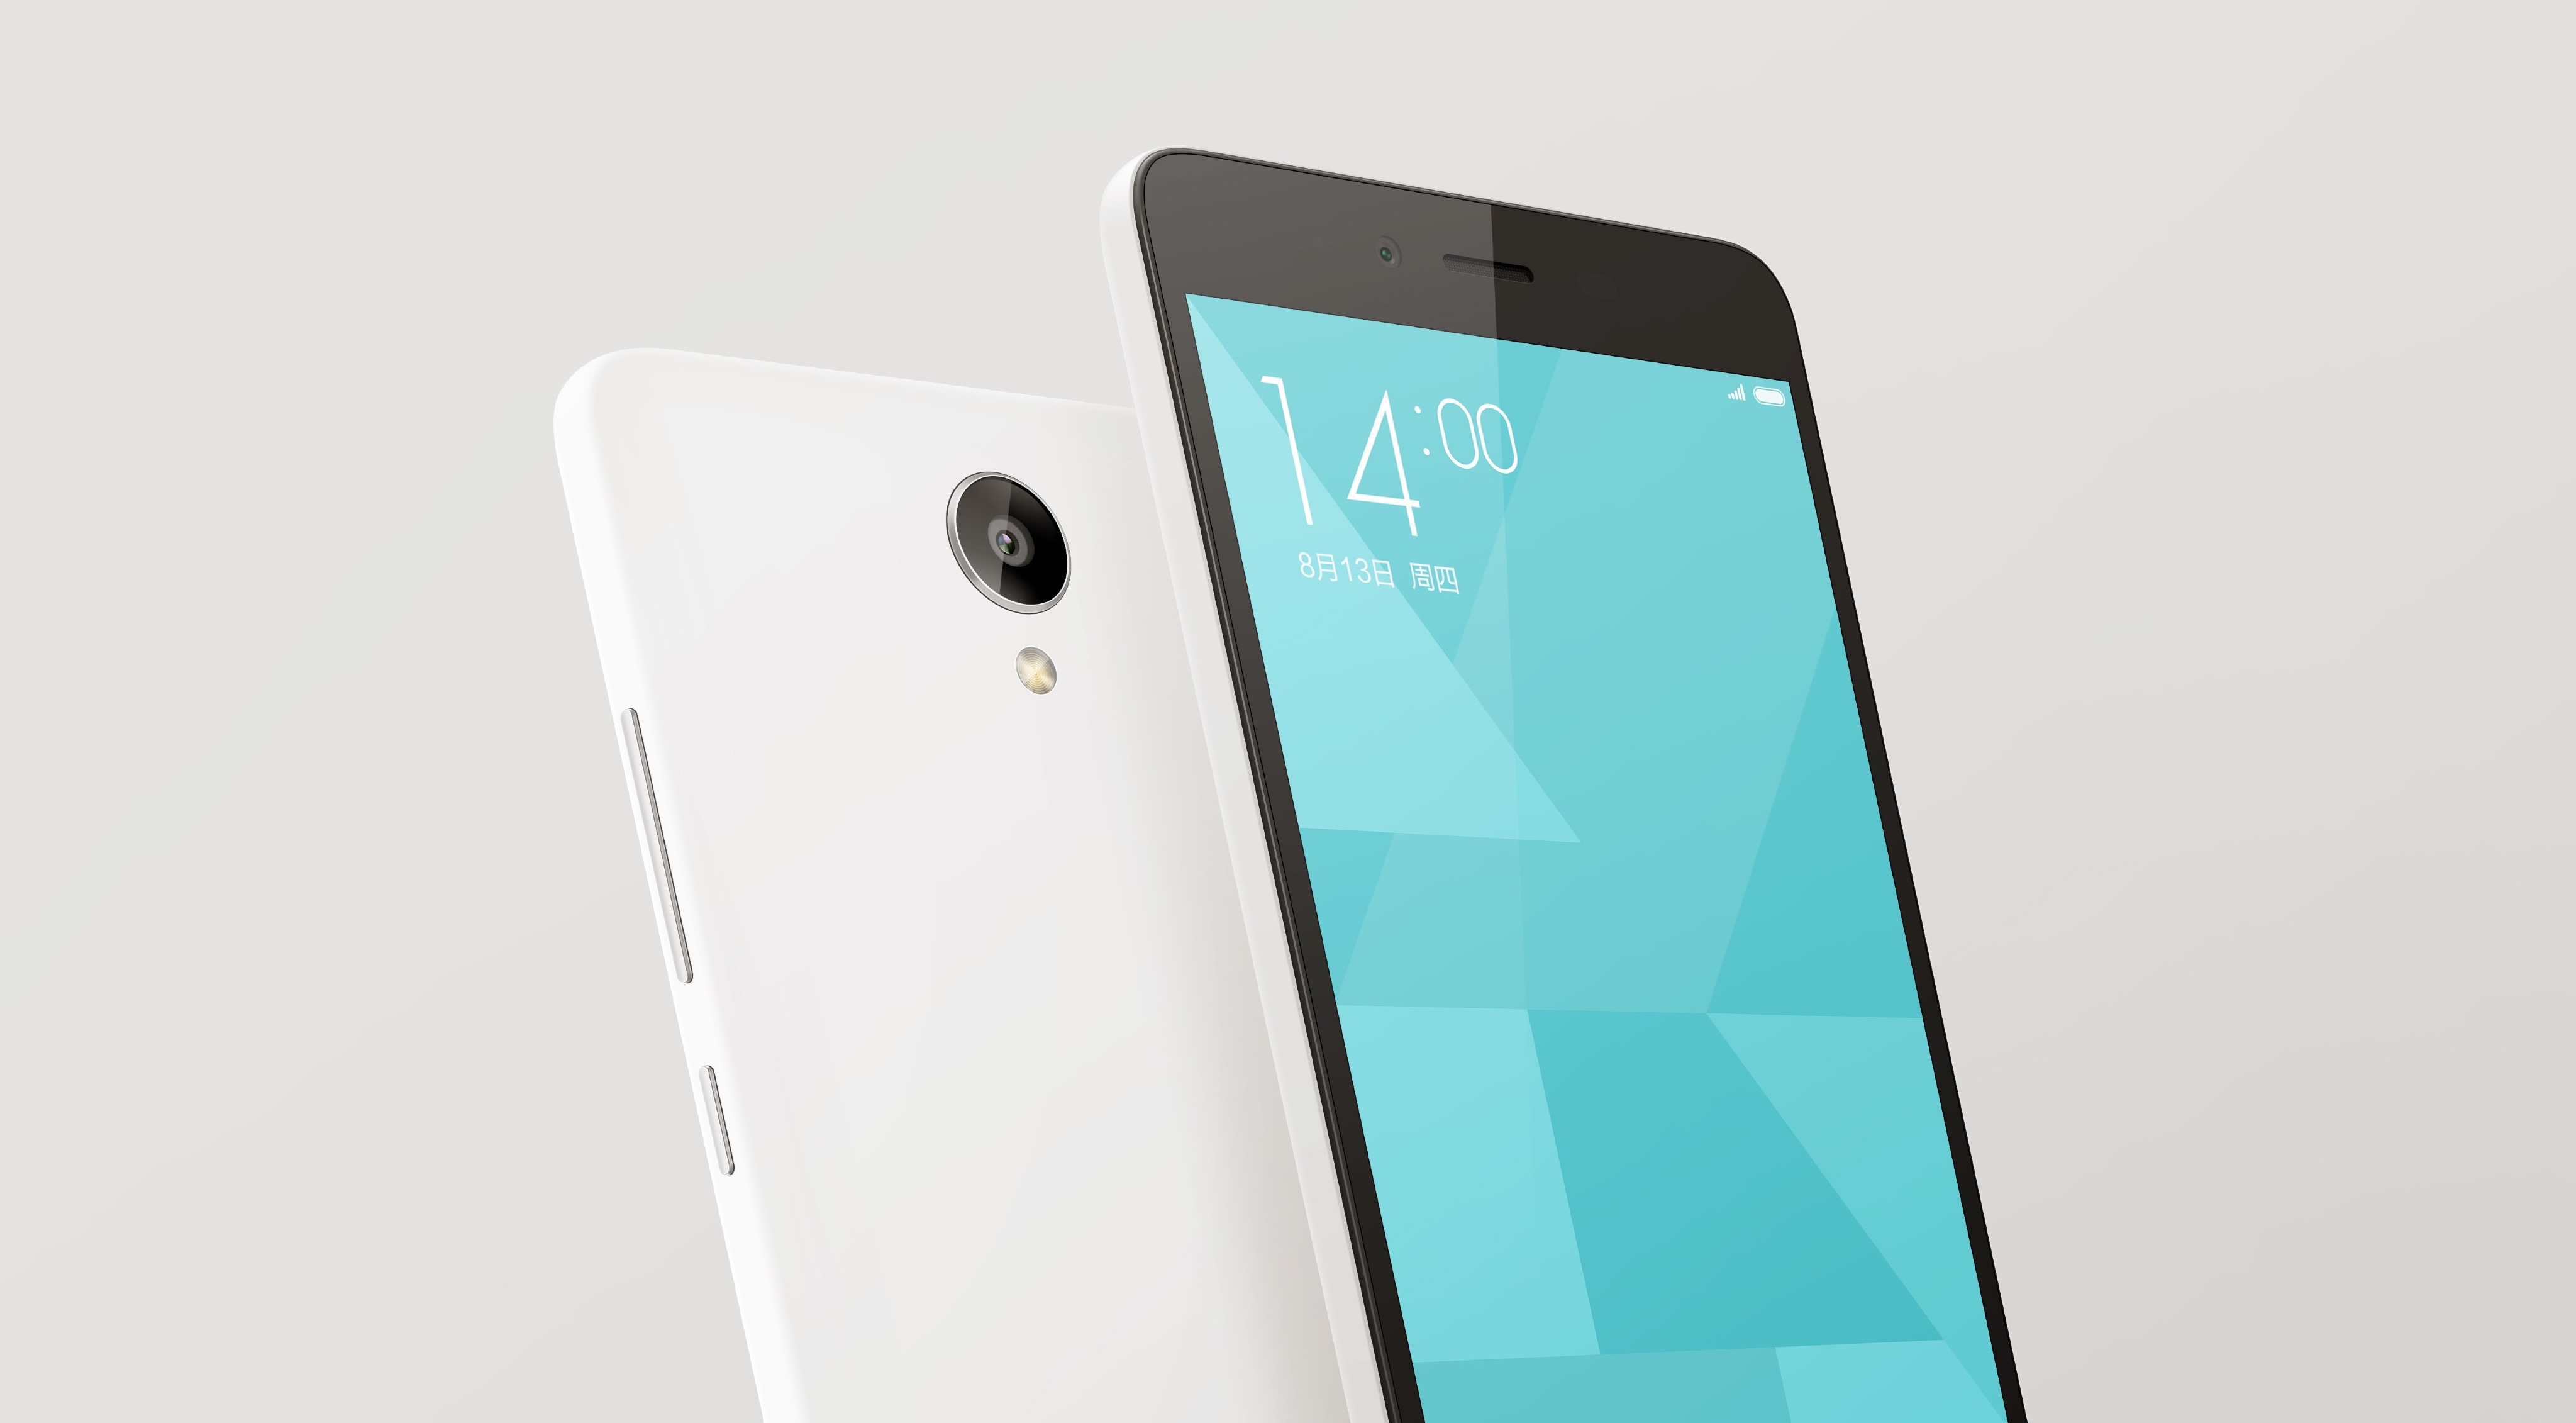 Xiaomi-Redmi-Note-2-official-images (4)